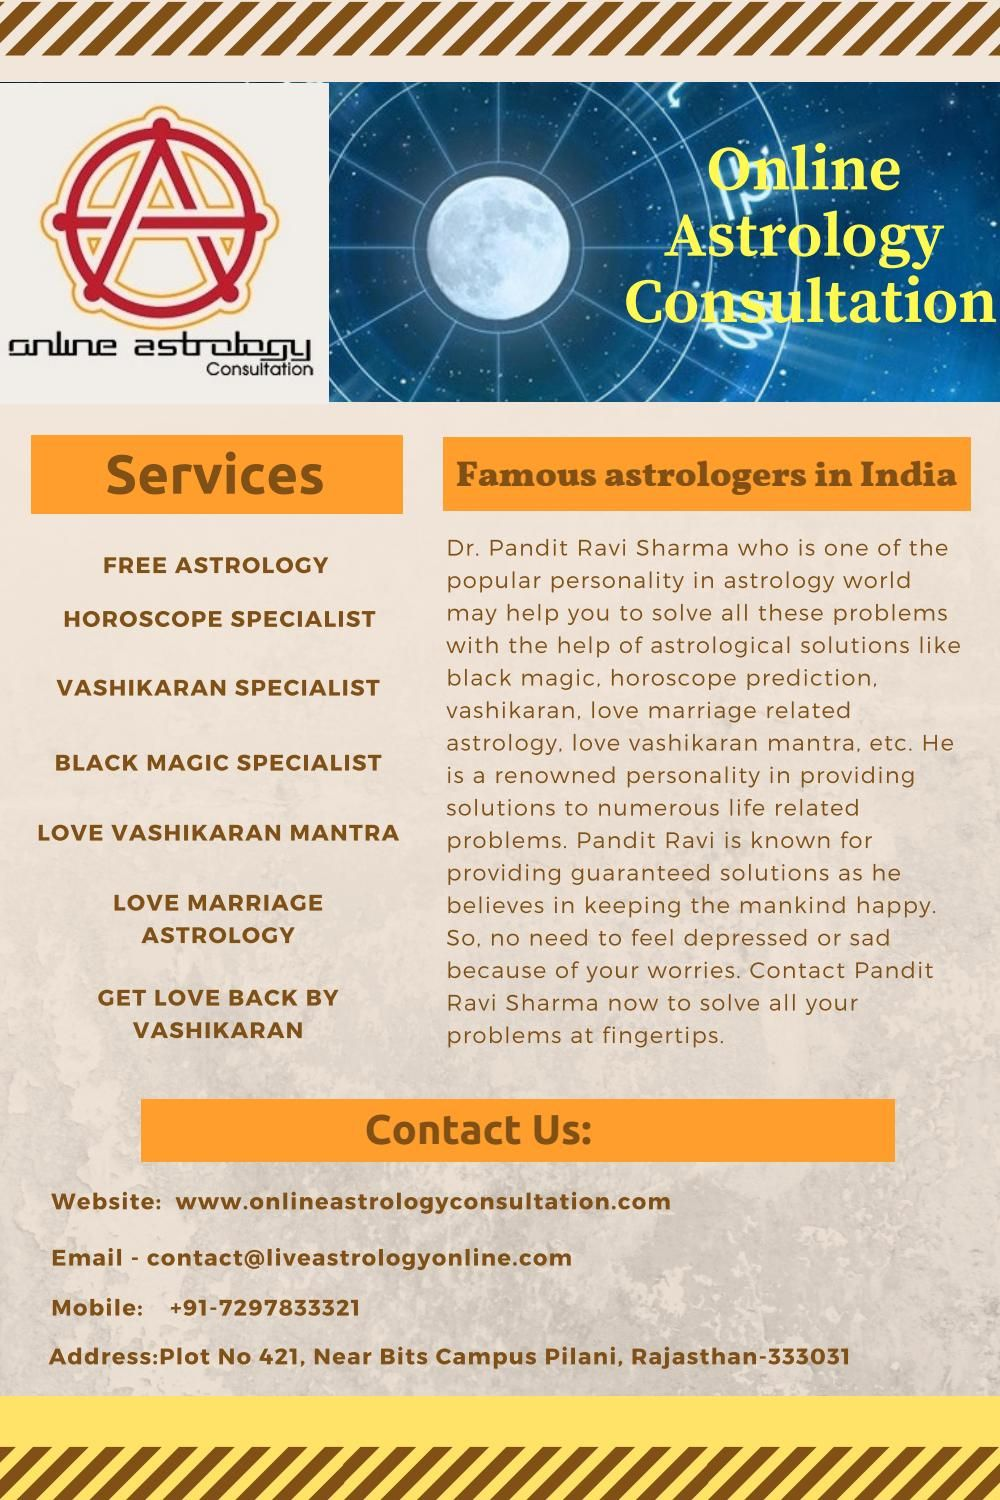 Astrology consultation online astrology consultation nvjuhfo Image collections